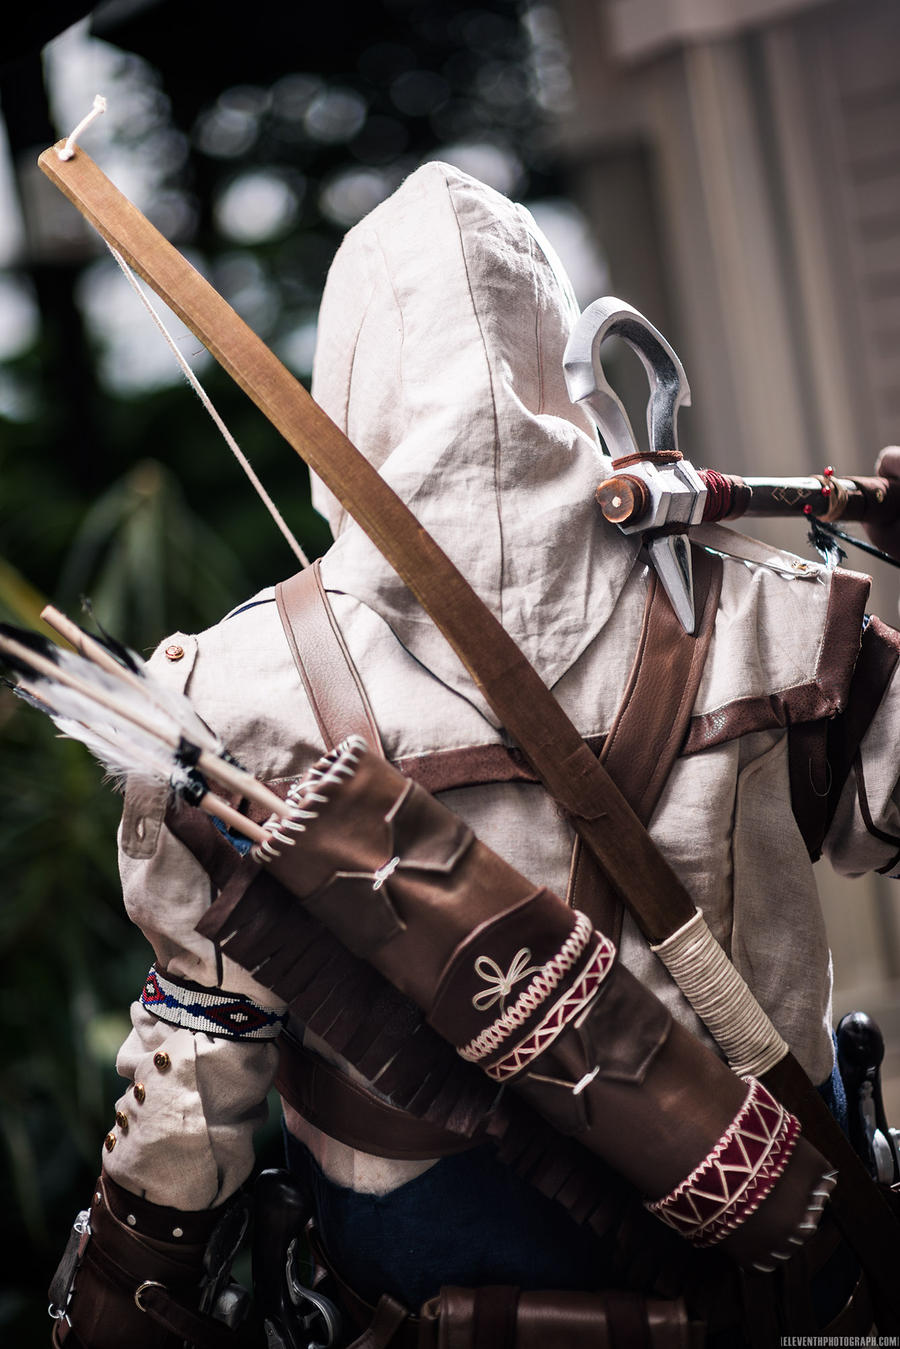 Assassin's Creed 3: Connor Kenway by mintdoggie